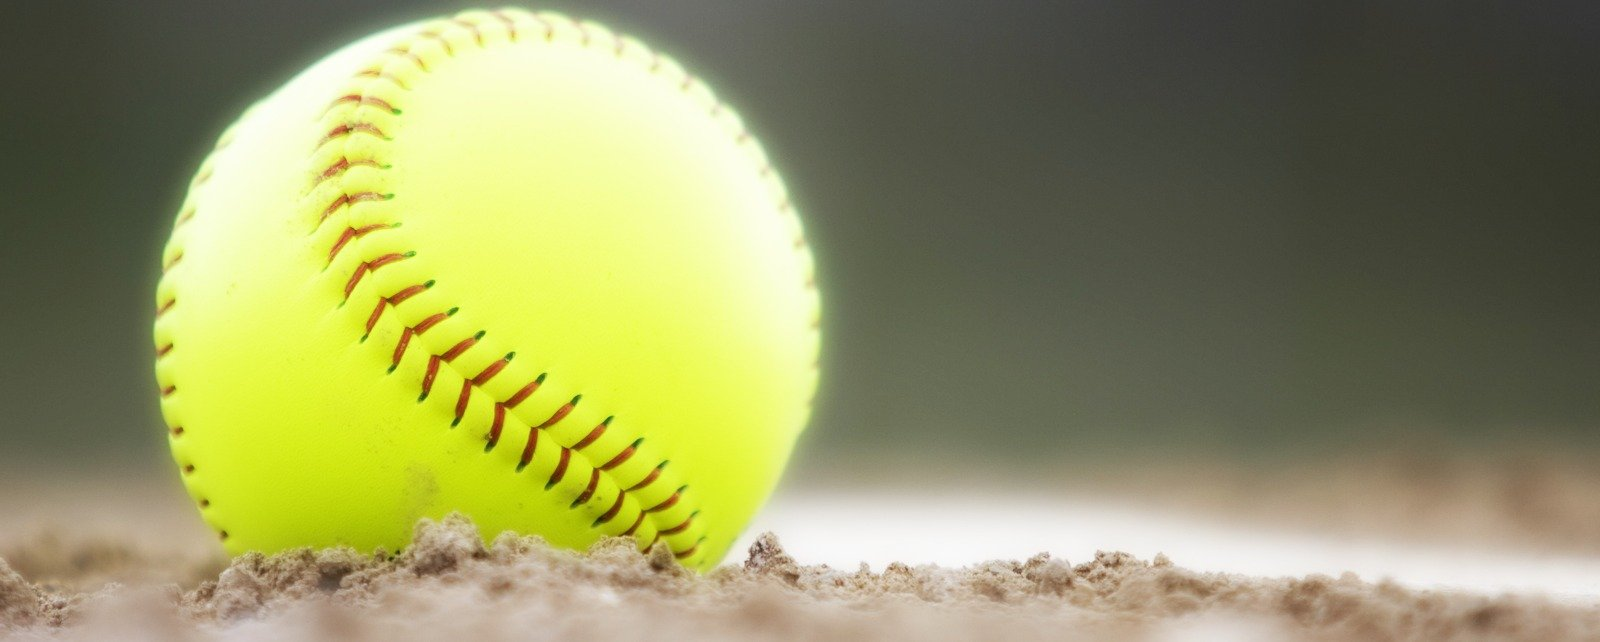 softball field wallpaper preview - photo #25